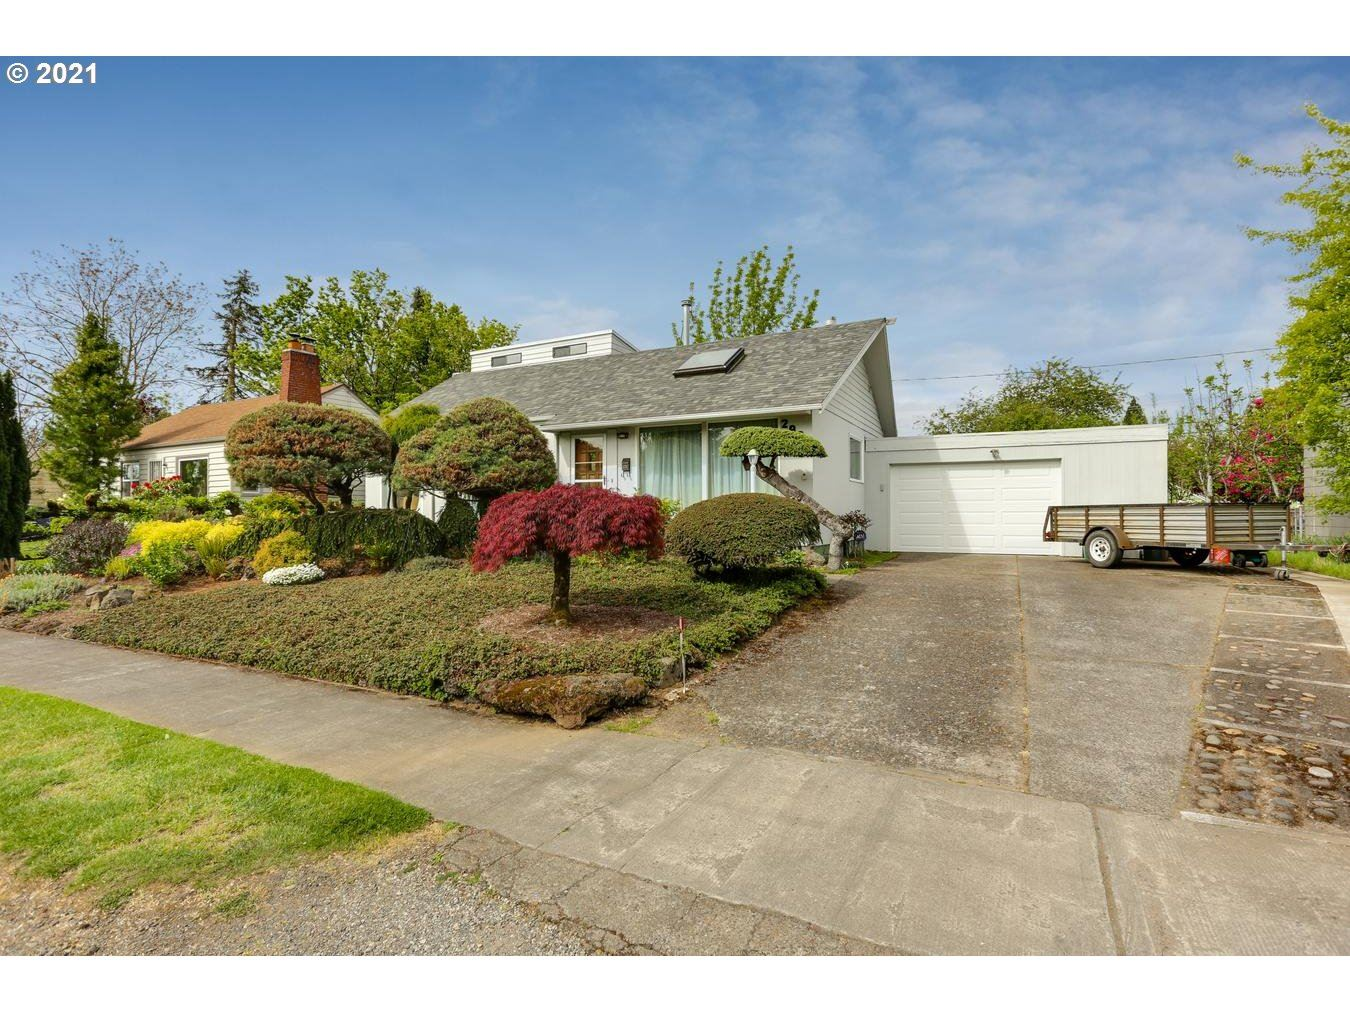 2939 SE 76TH AVE, Portland, OR 97206 - MLS#: 21498842